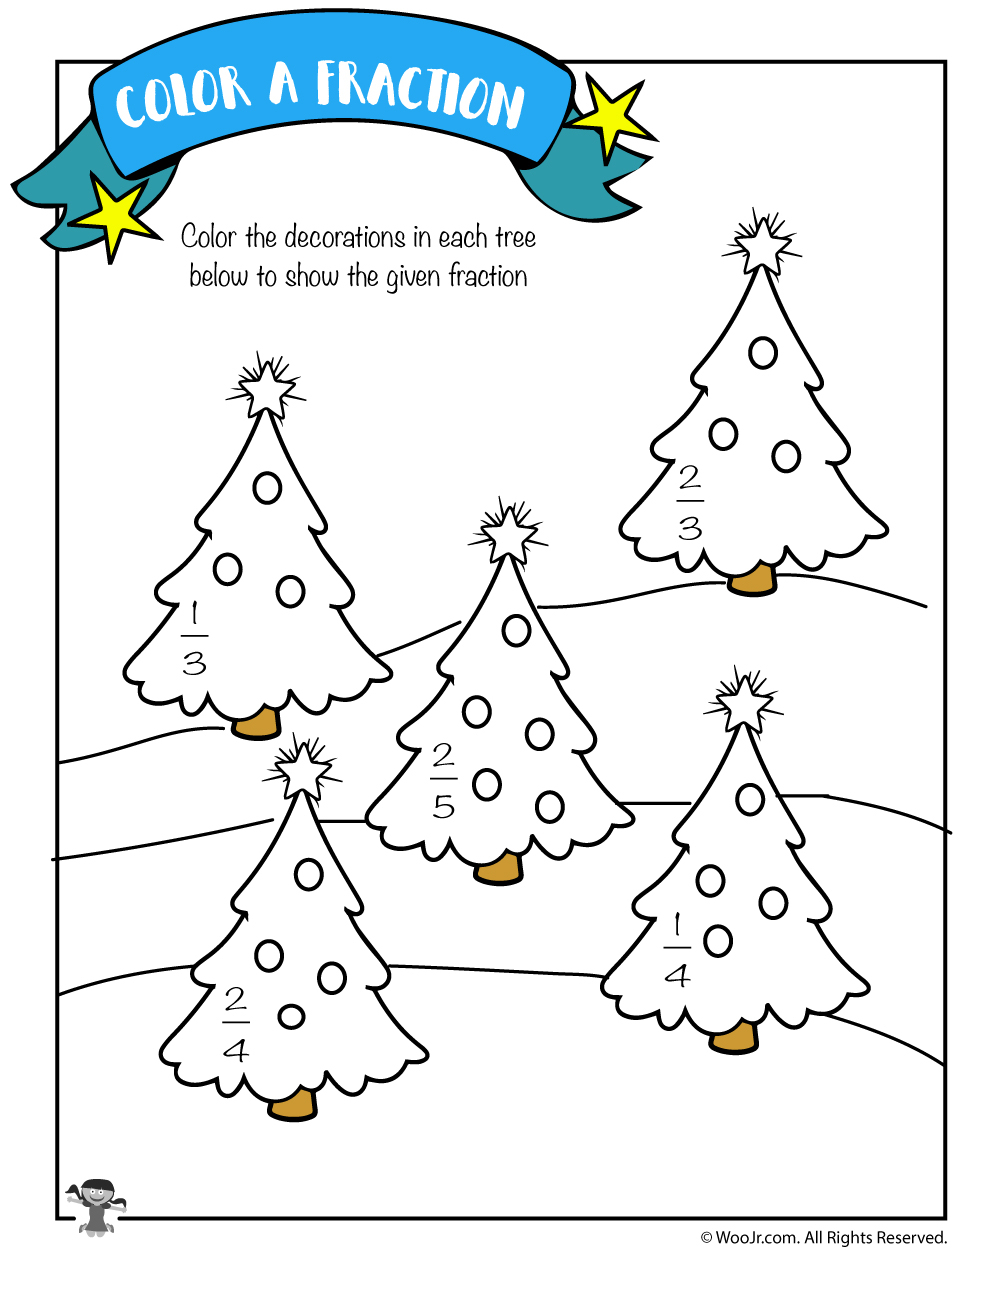 Color The Fraction Worksheet With Christmas Trees | Woo! Jr